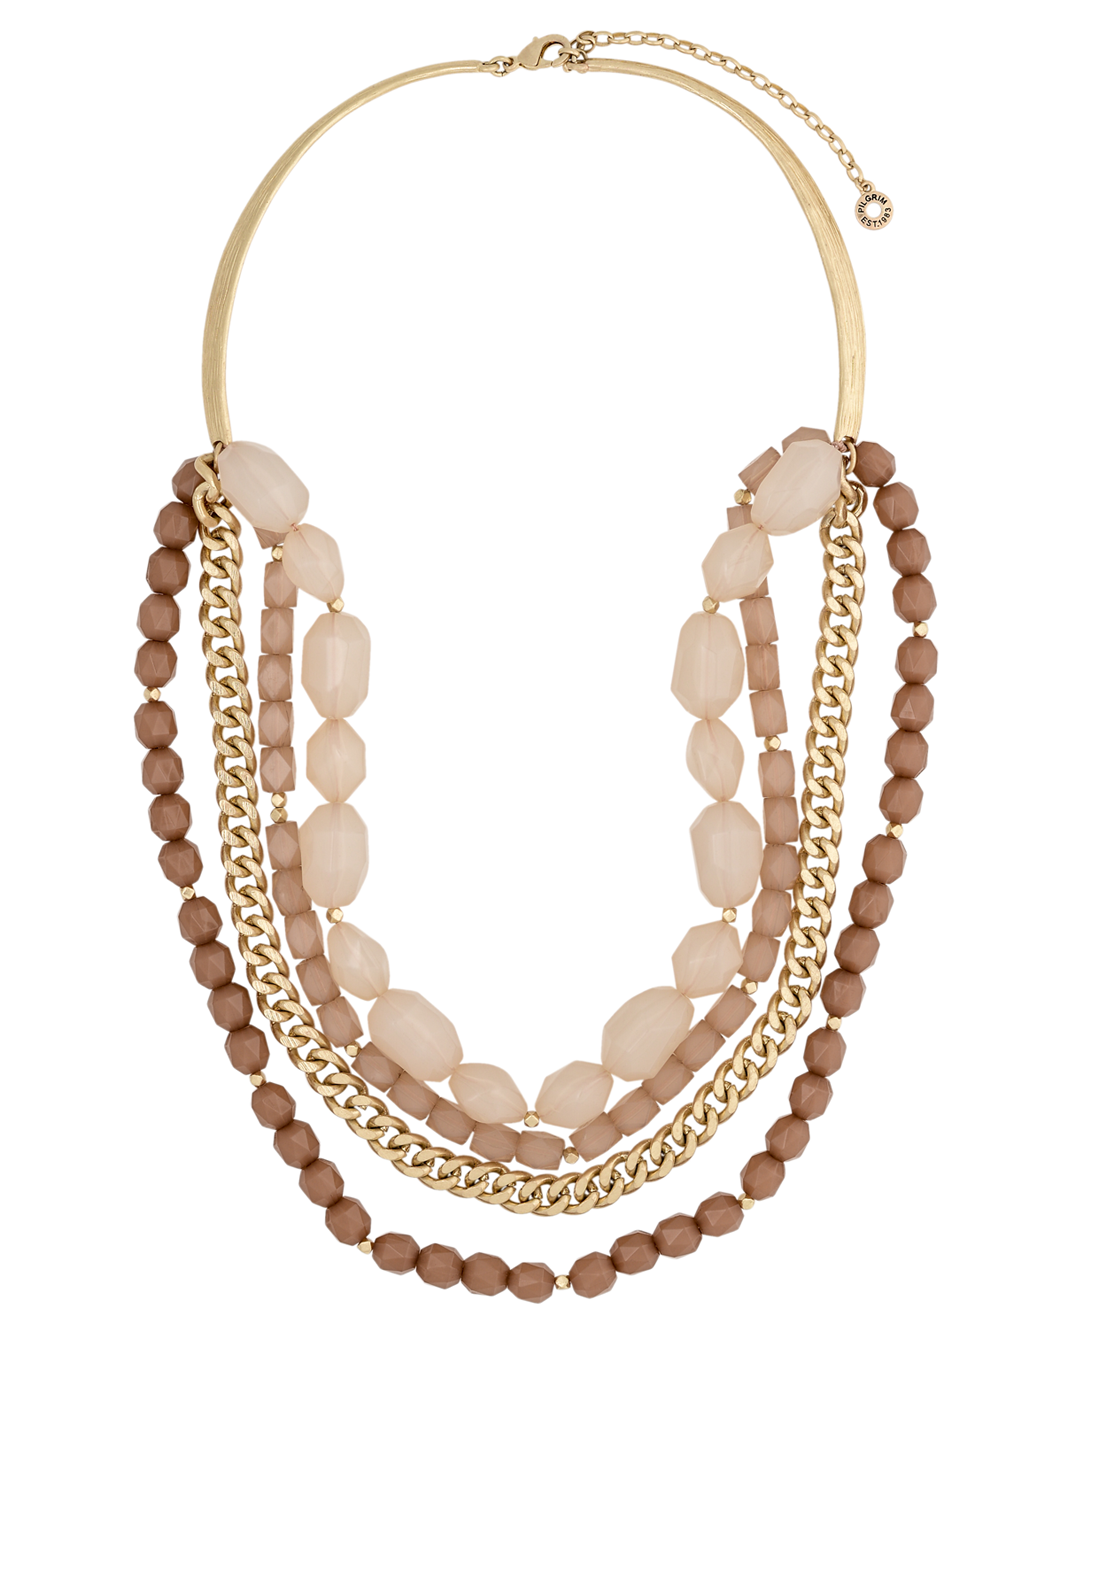 Pilgrim Womens Jollification Beaded Necklace, Beige